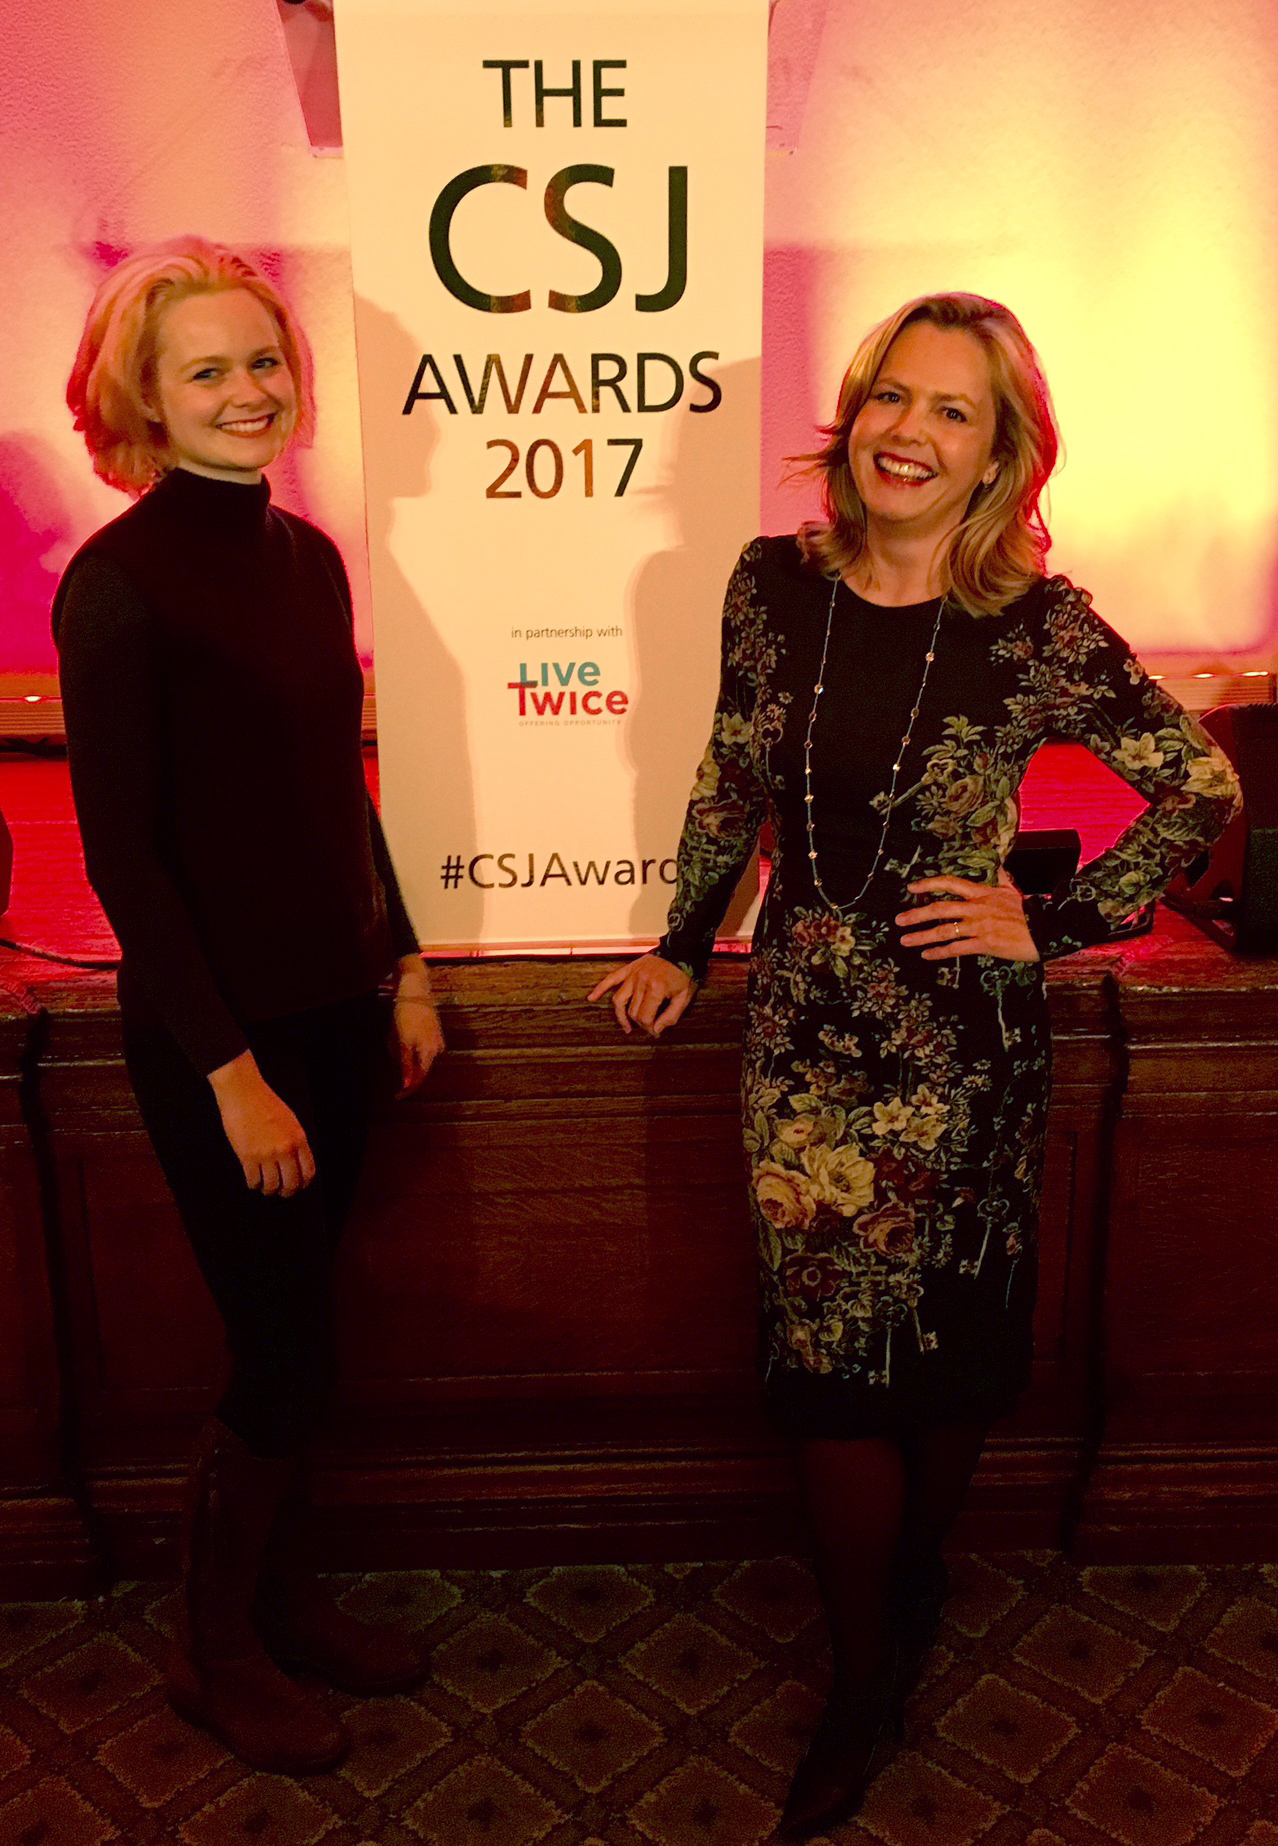 The Centre for Social Justice Awards with LiveTwice Liz Earle Wellbeing